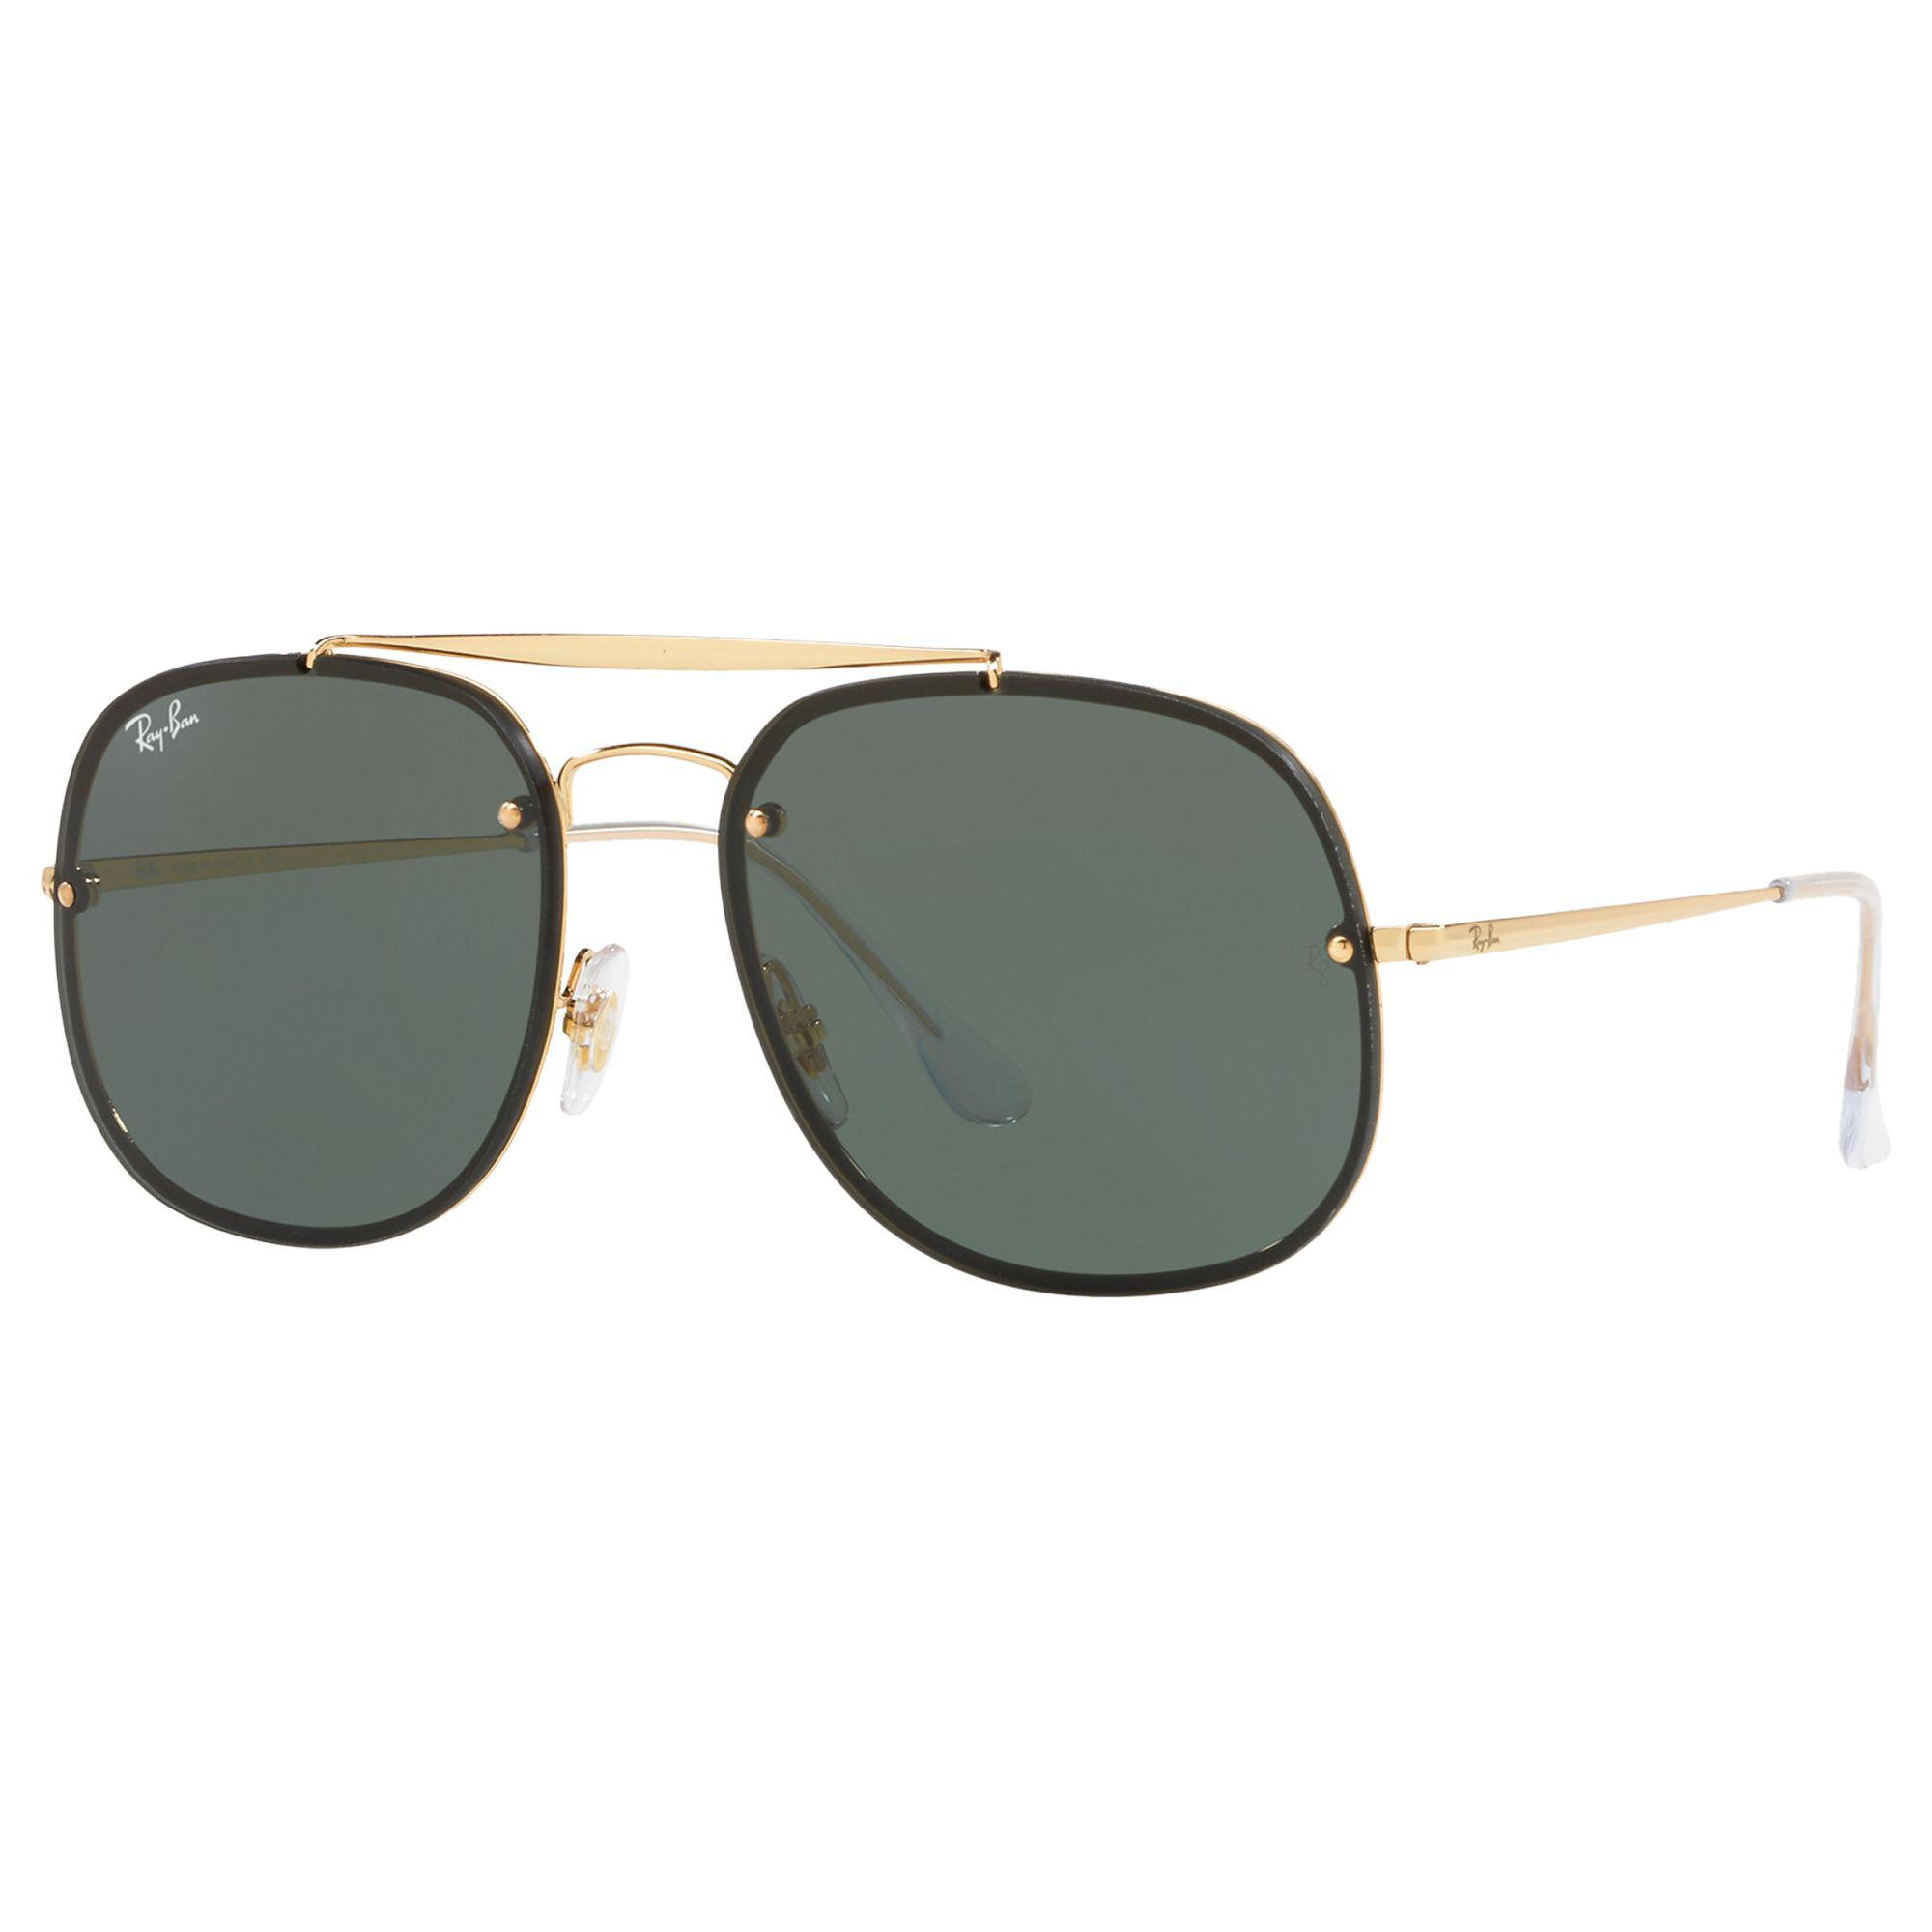 7be9f84509 Ray-Ban Rb3583 Unisex Square Polarised Sunglasses in Green for Men ...